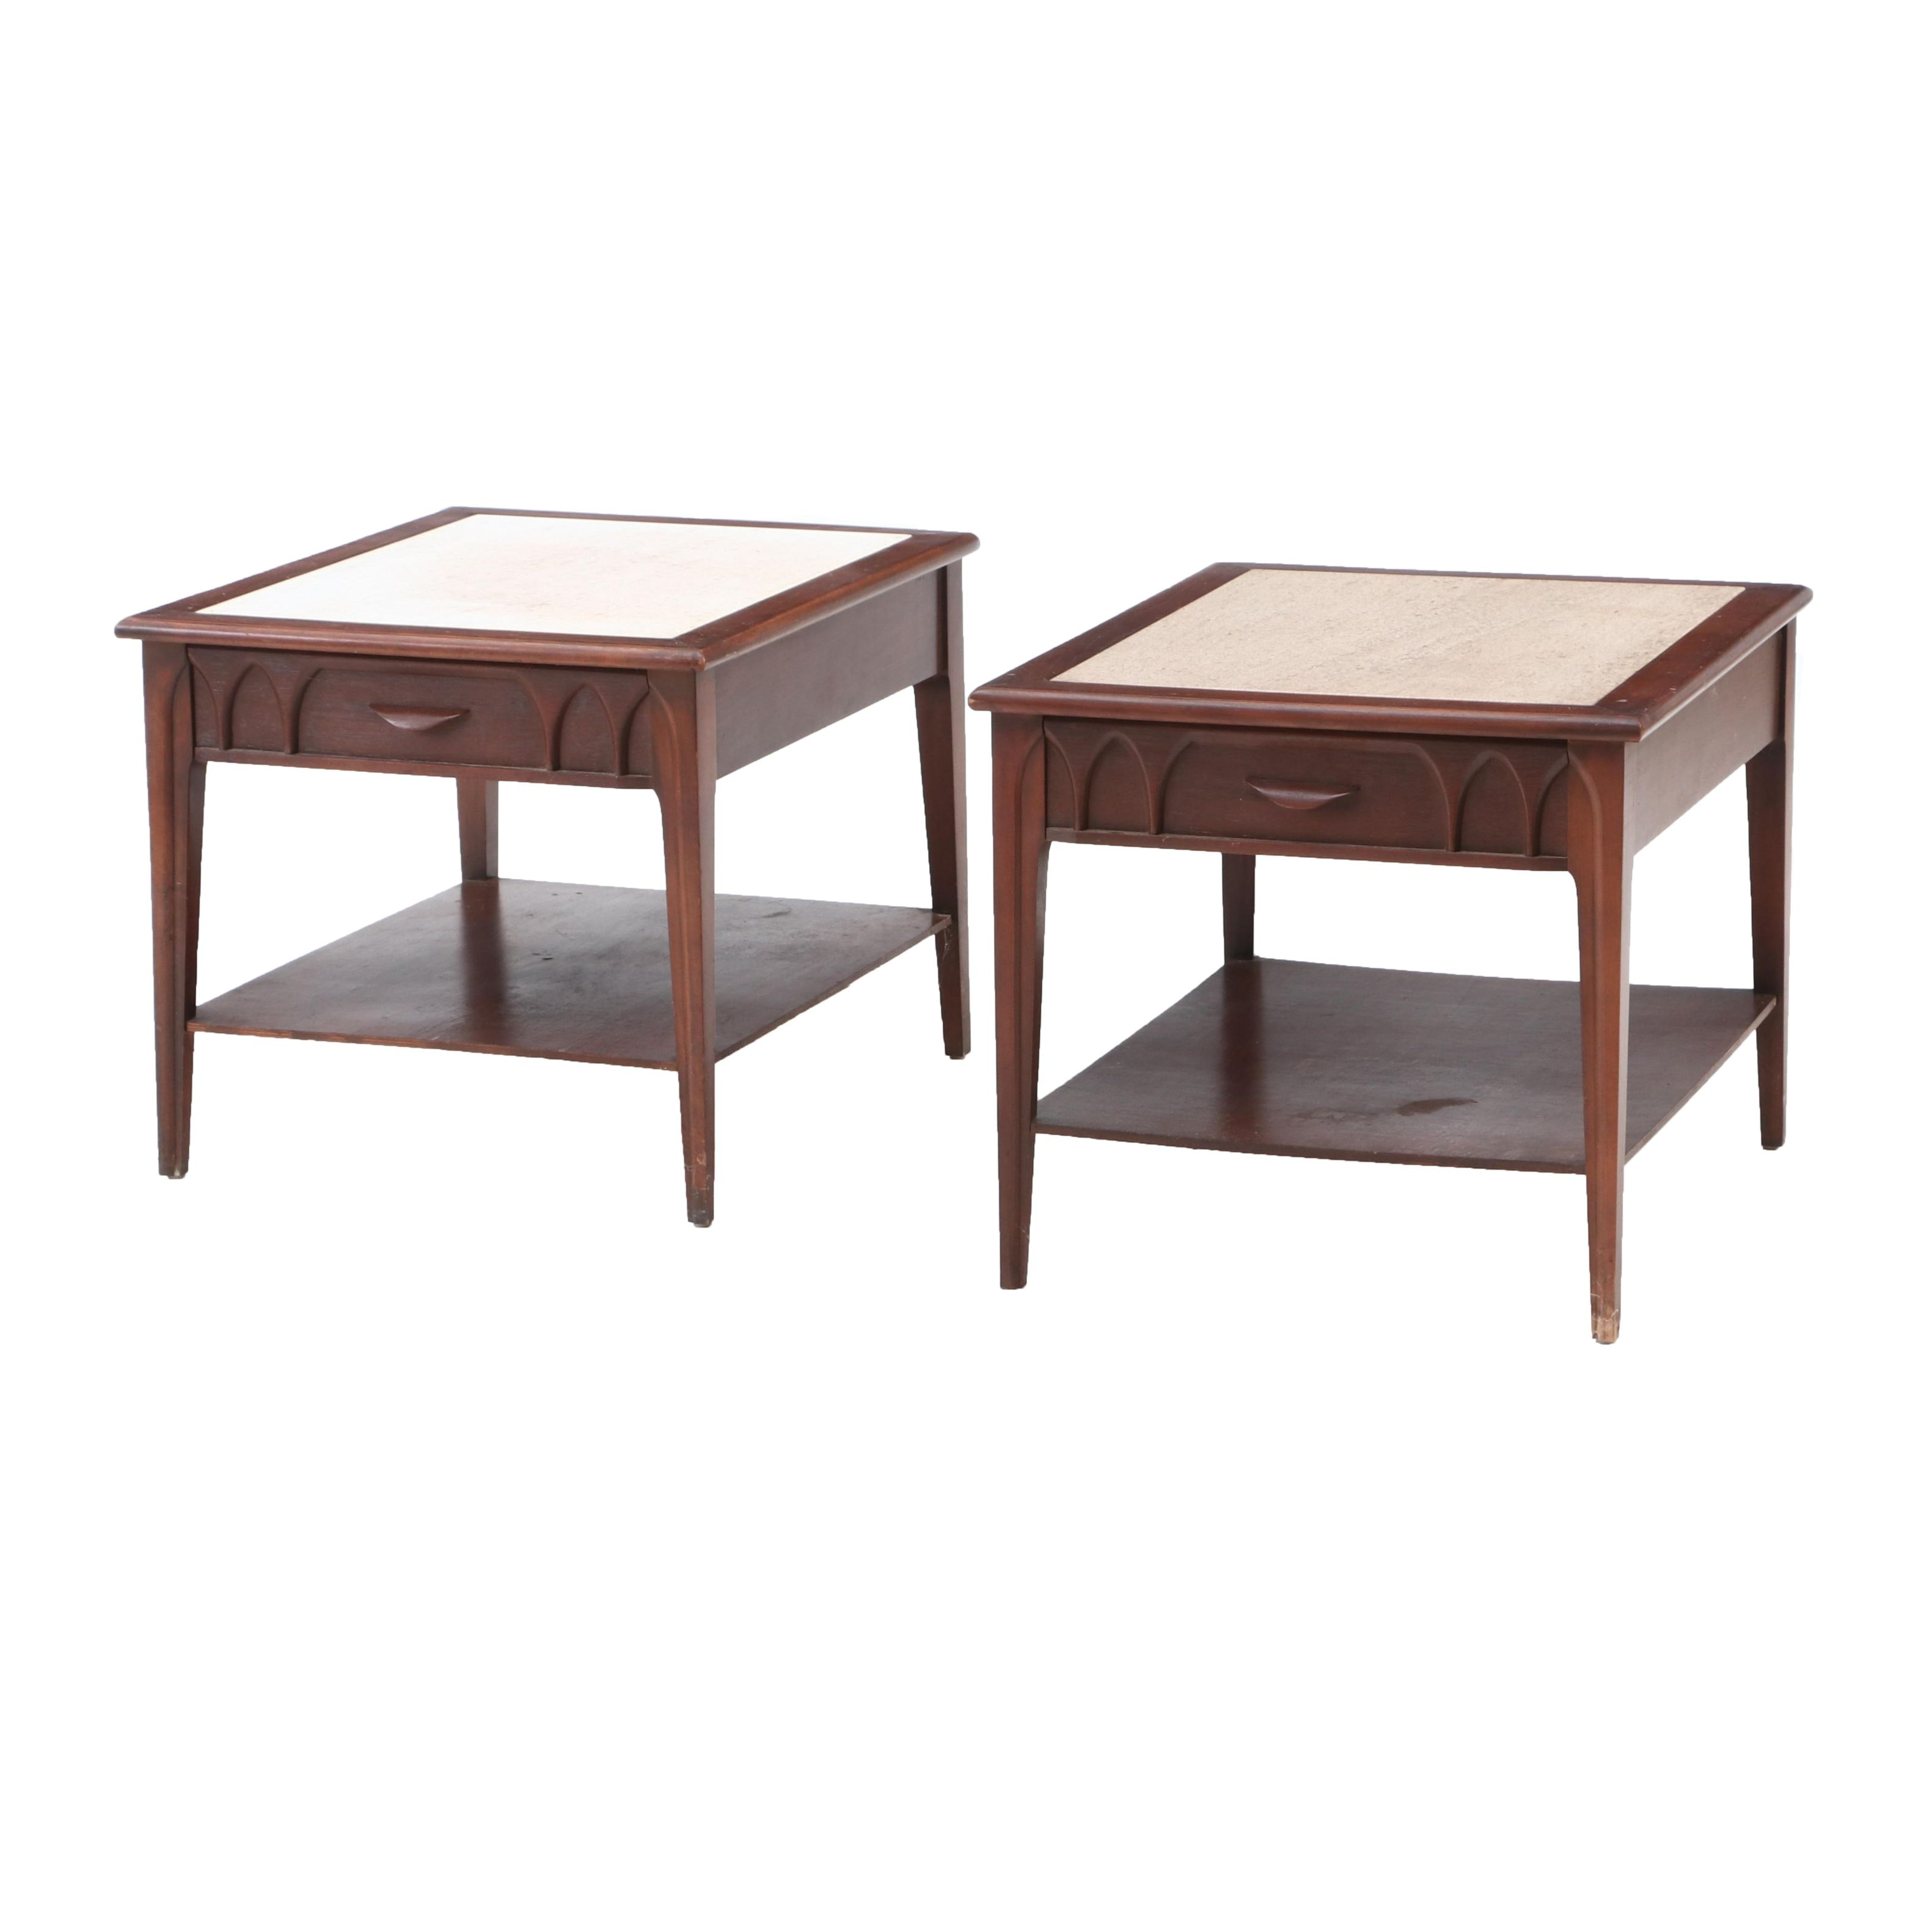 Pair of Stone Top Mid Century Modern End Tables